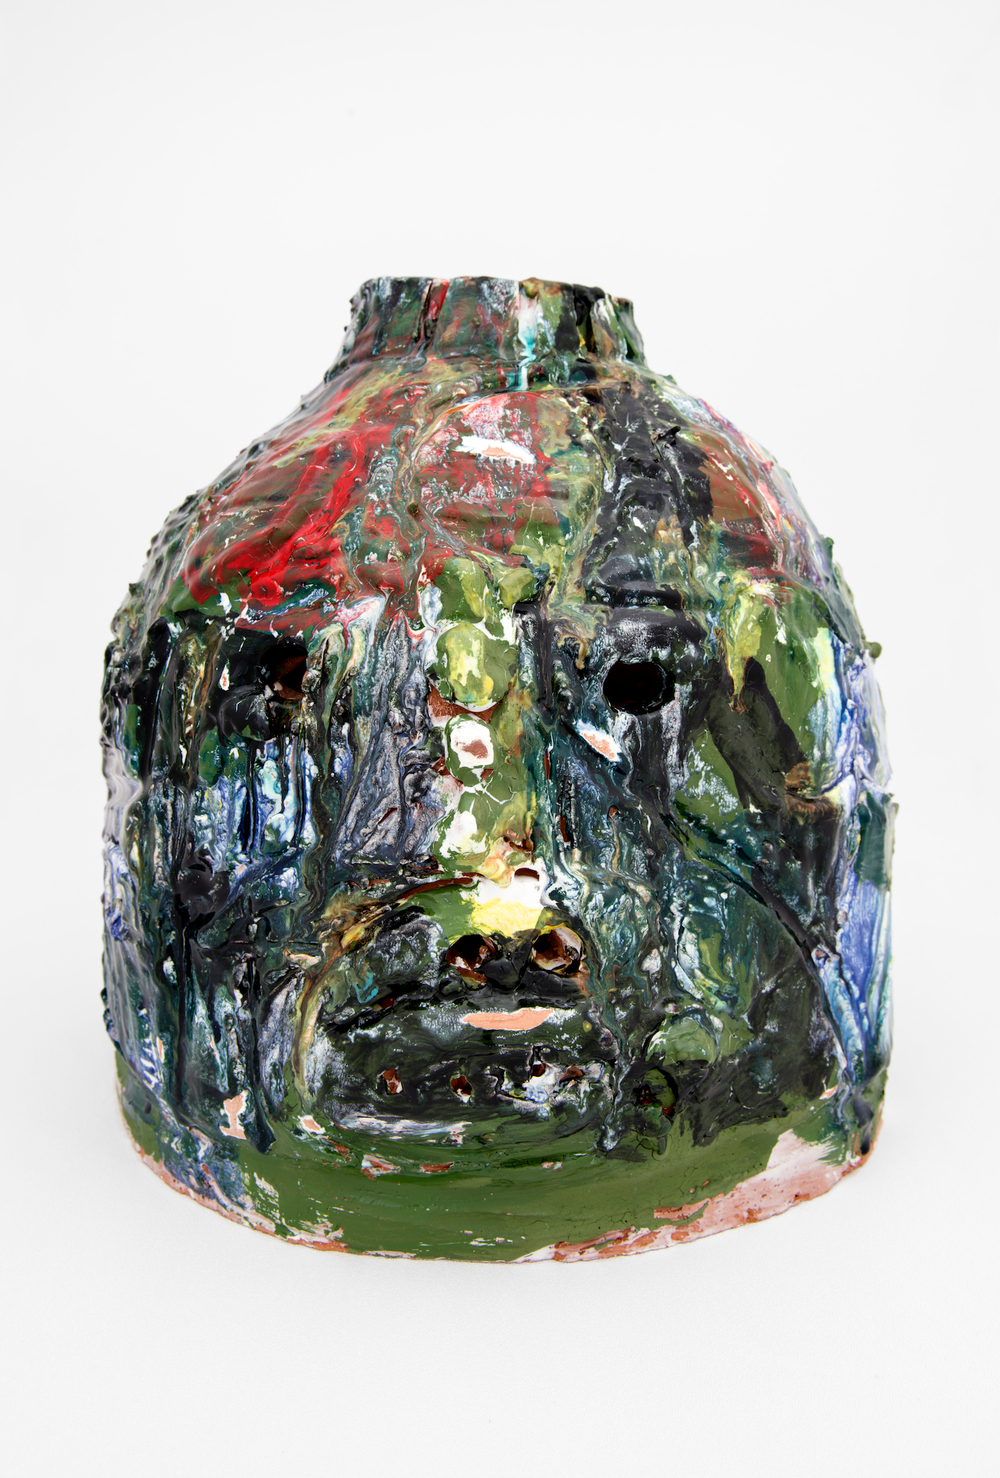 William J. O'Brien  Blood Face  2012 Glazed ceramic 15 ½h x 14w x 14d in WOB803